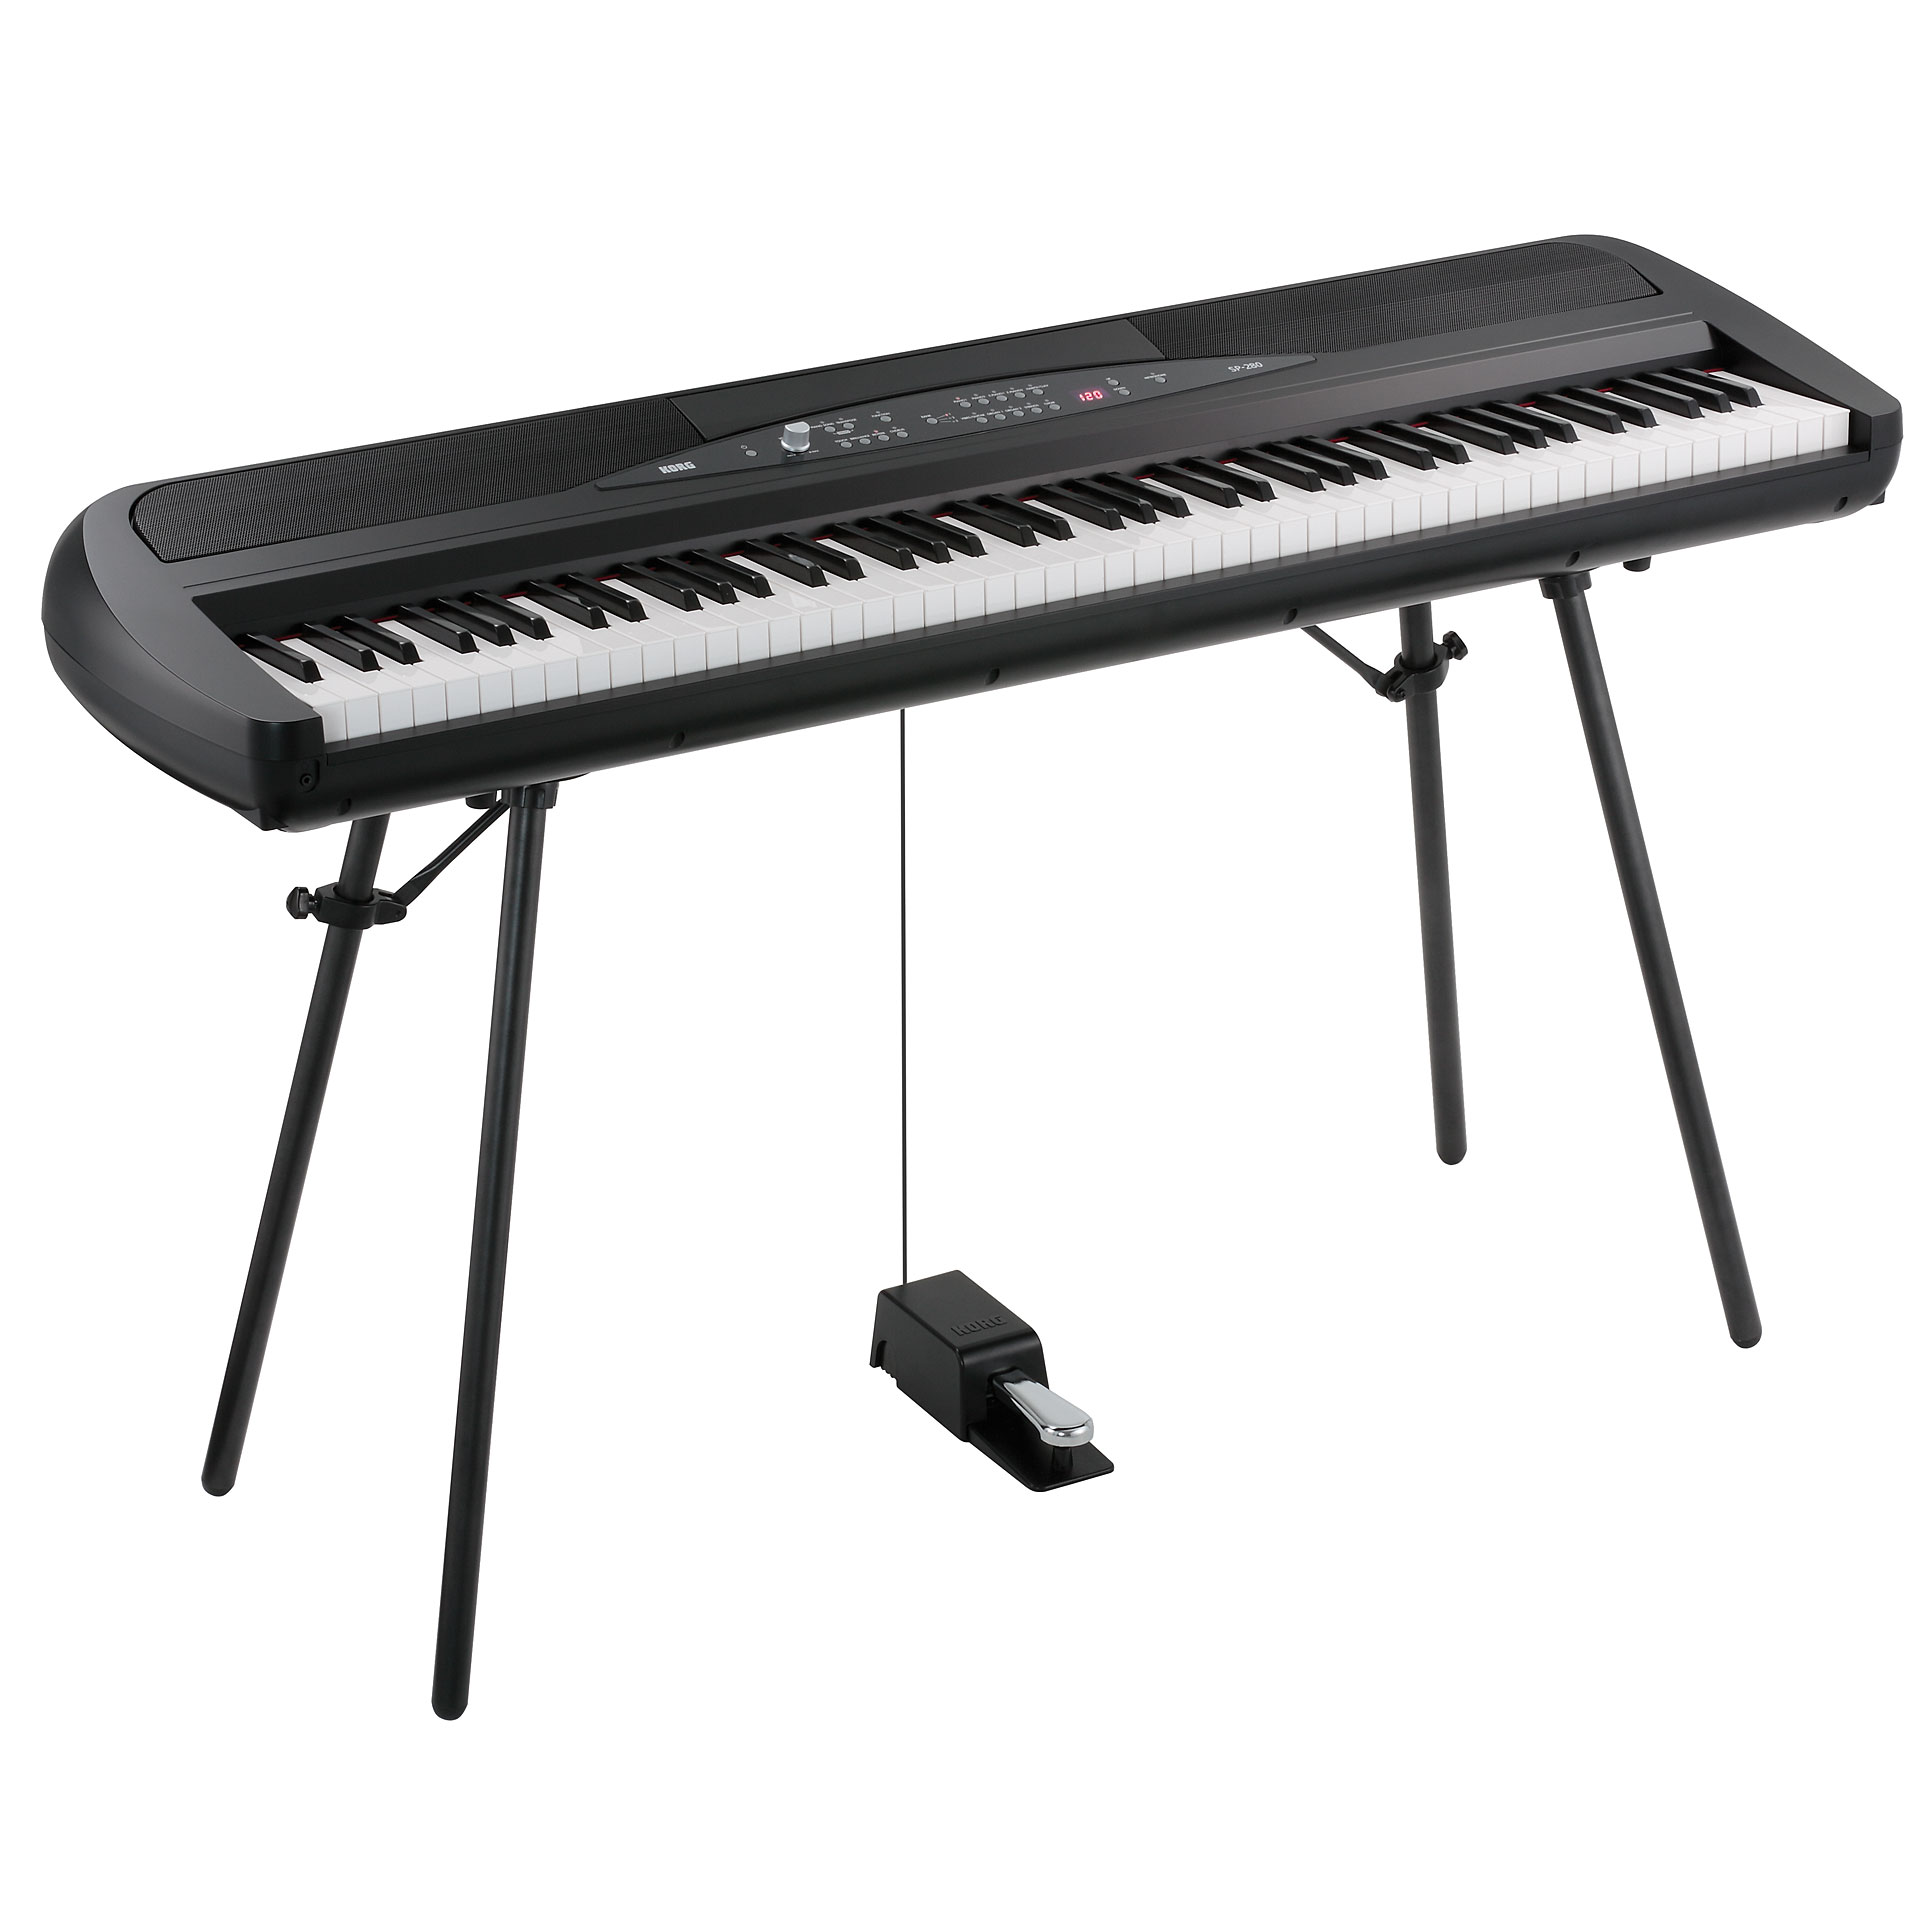 Korg SP280 Concert Series Digital Piano with Speakers and Stand